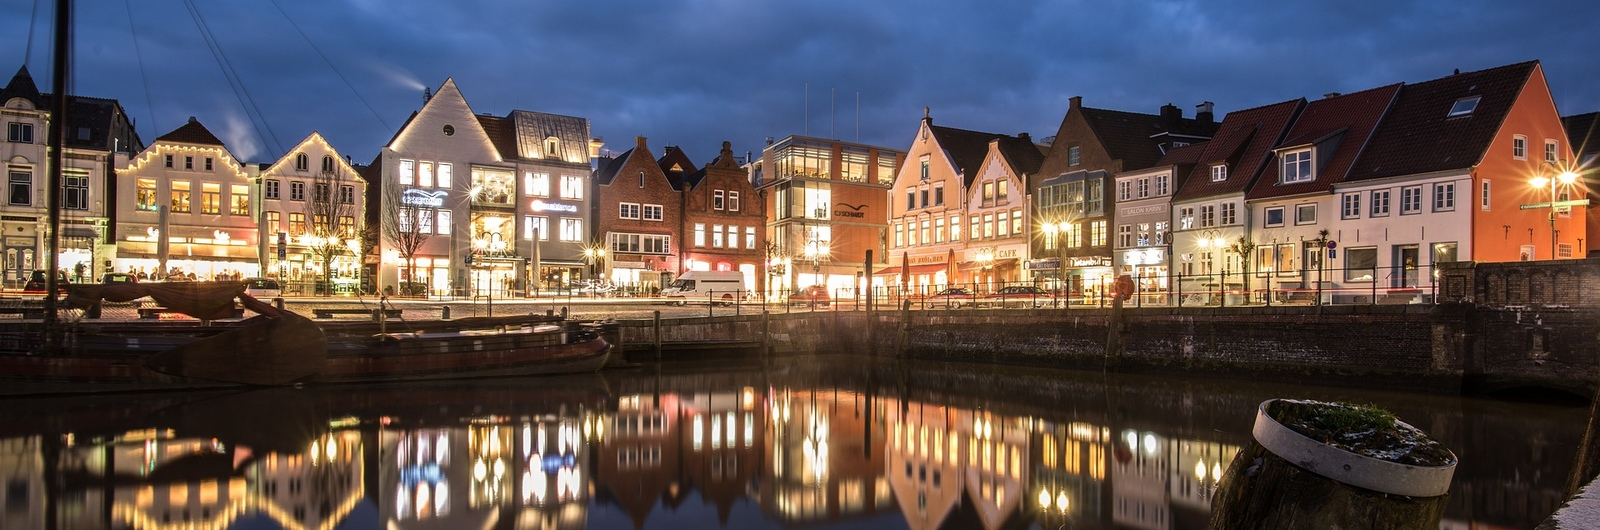 husum city header